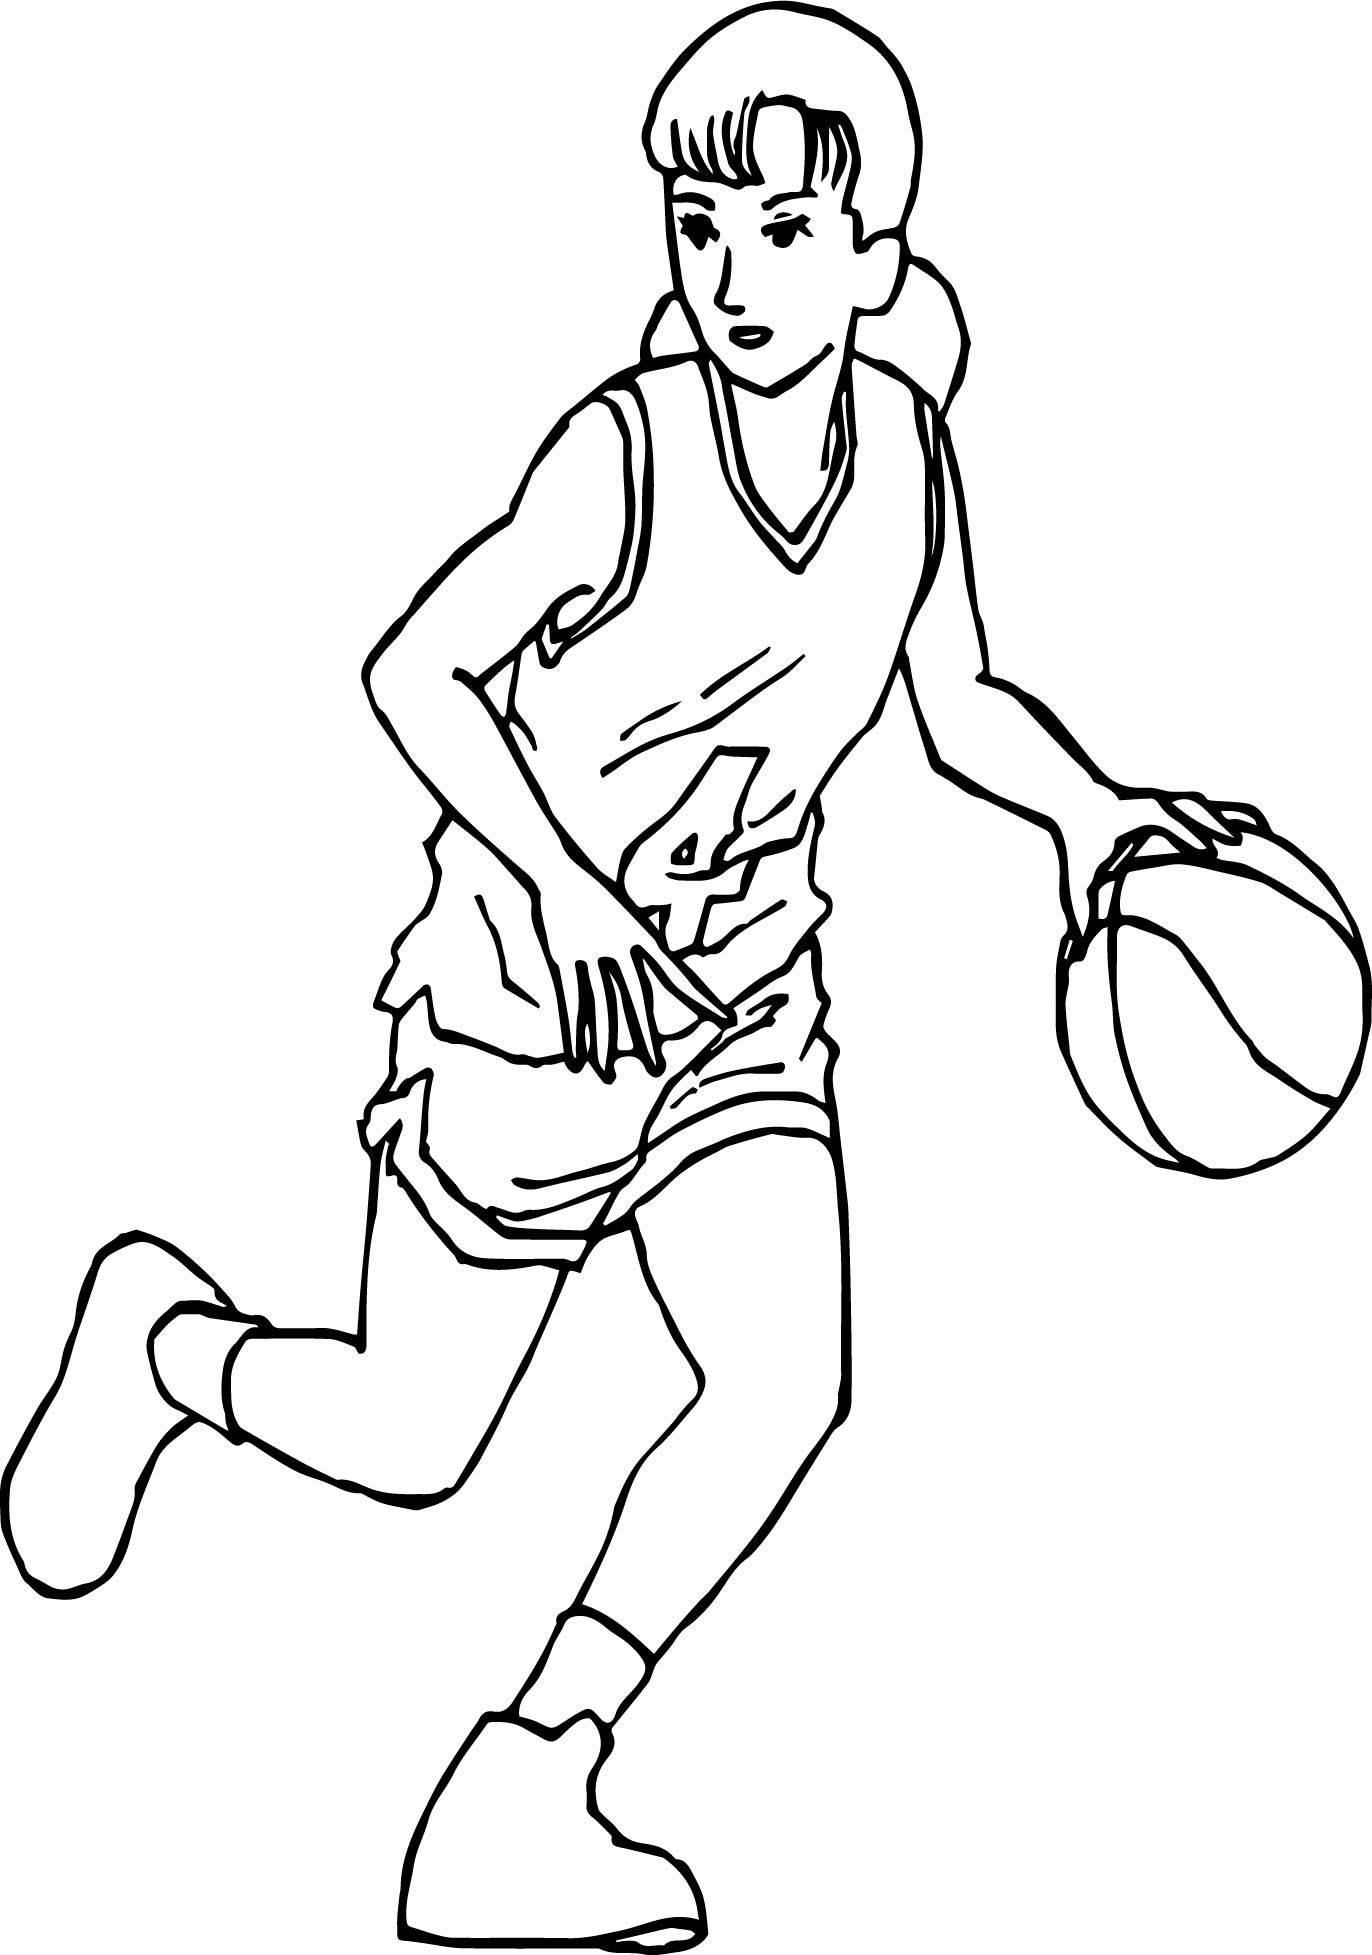 Basketball Coloring Pages 6